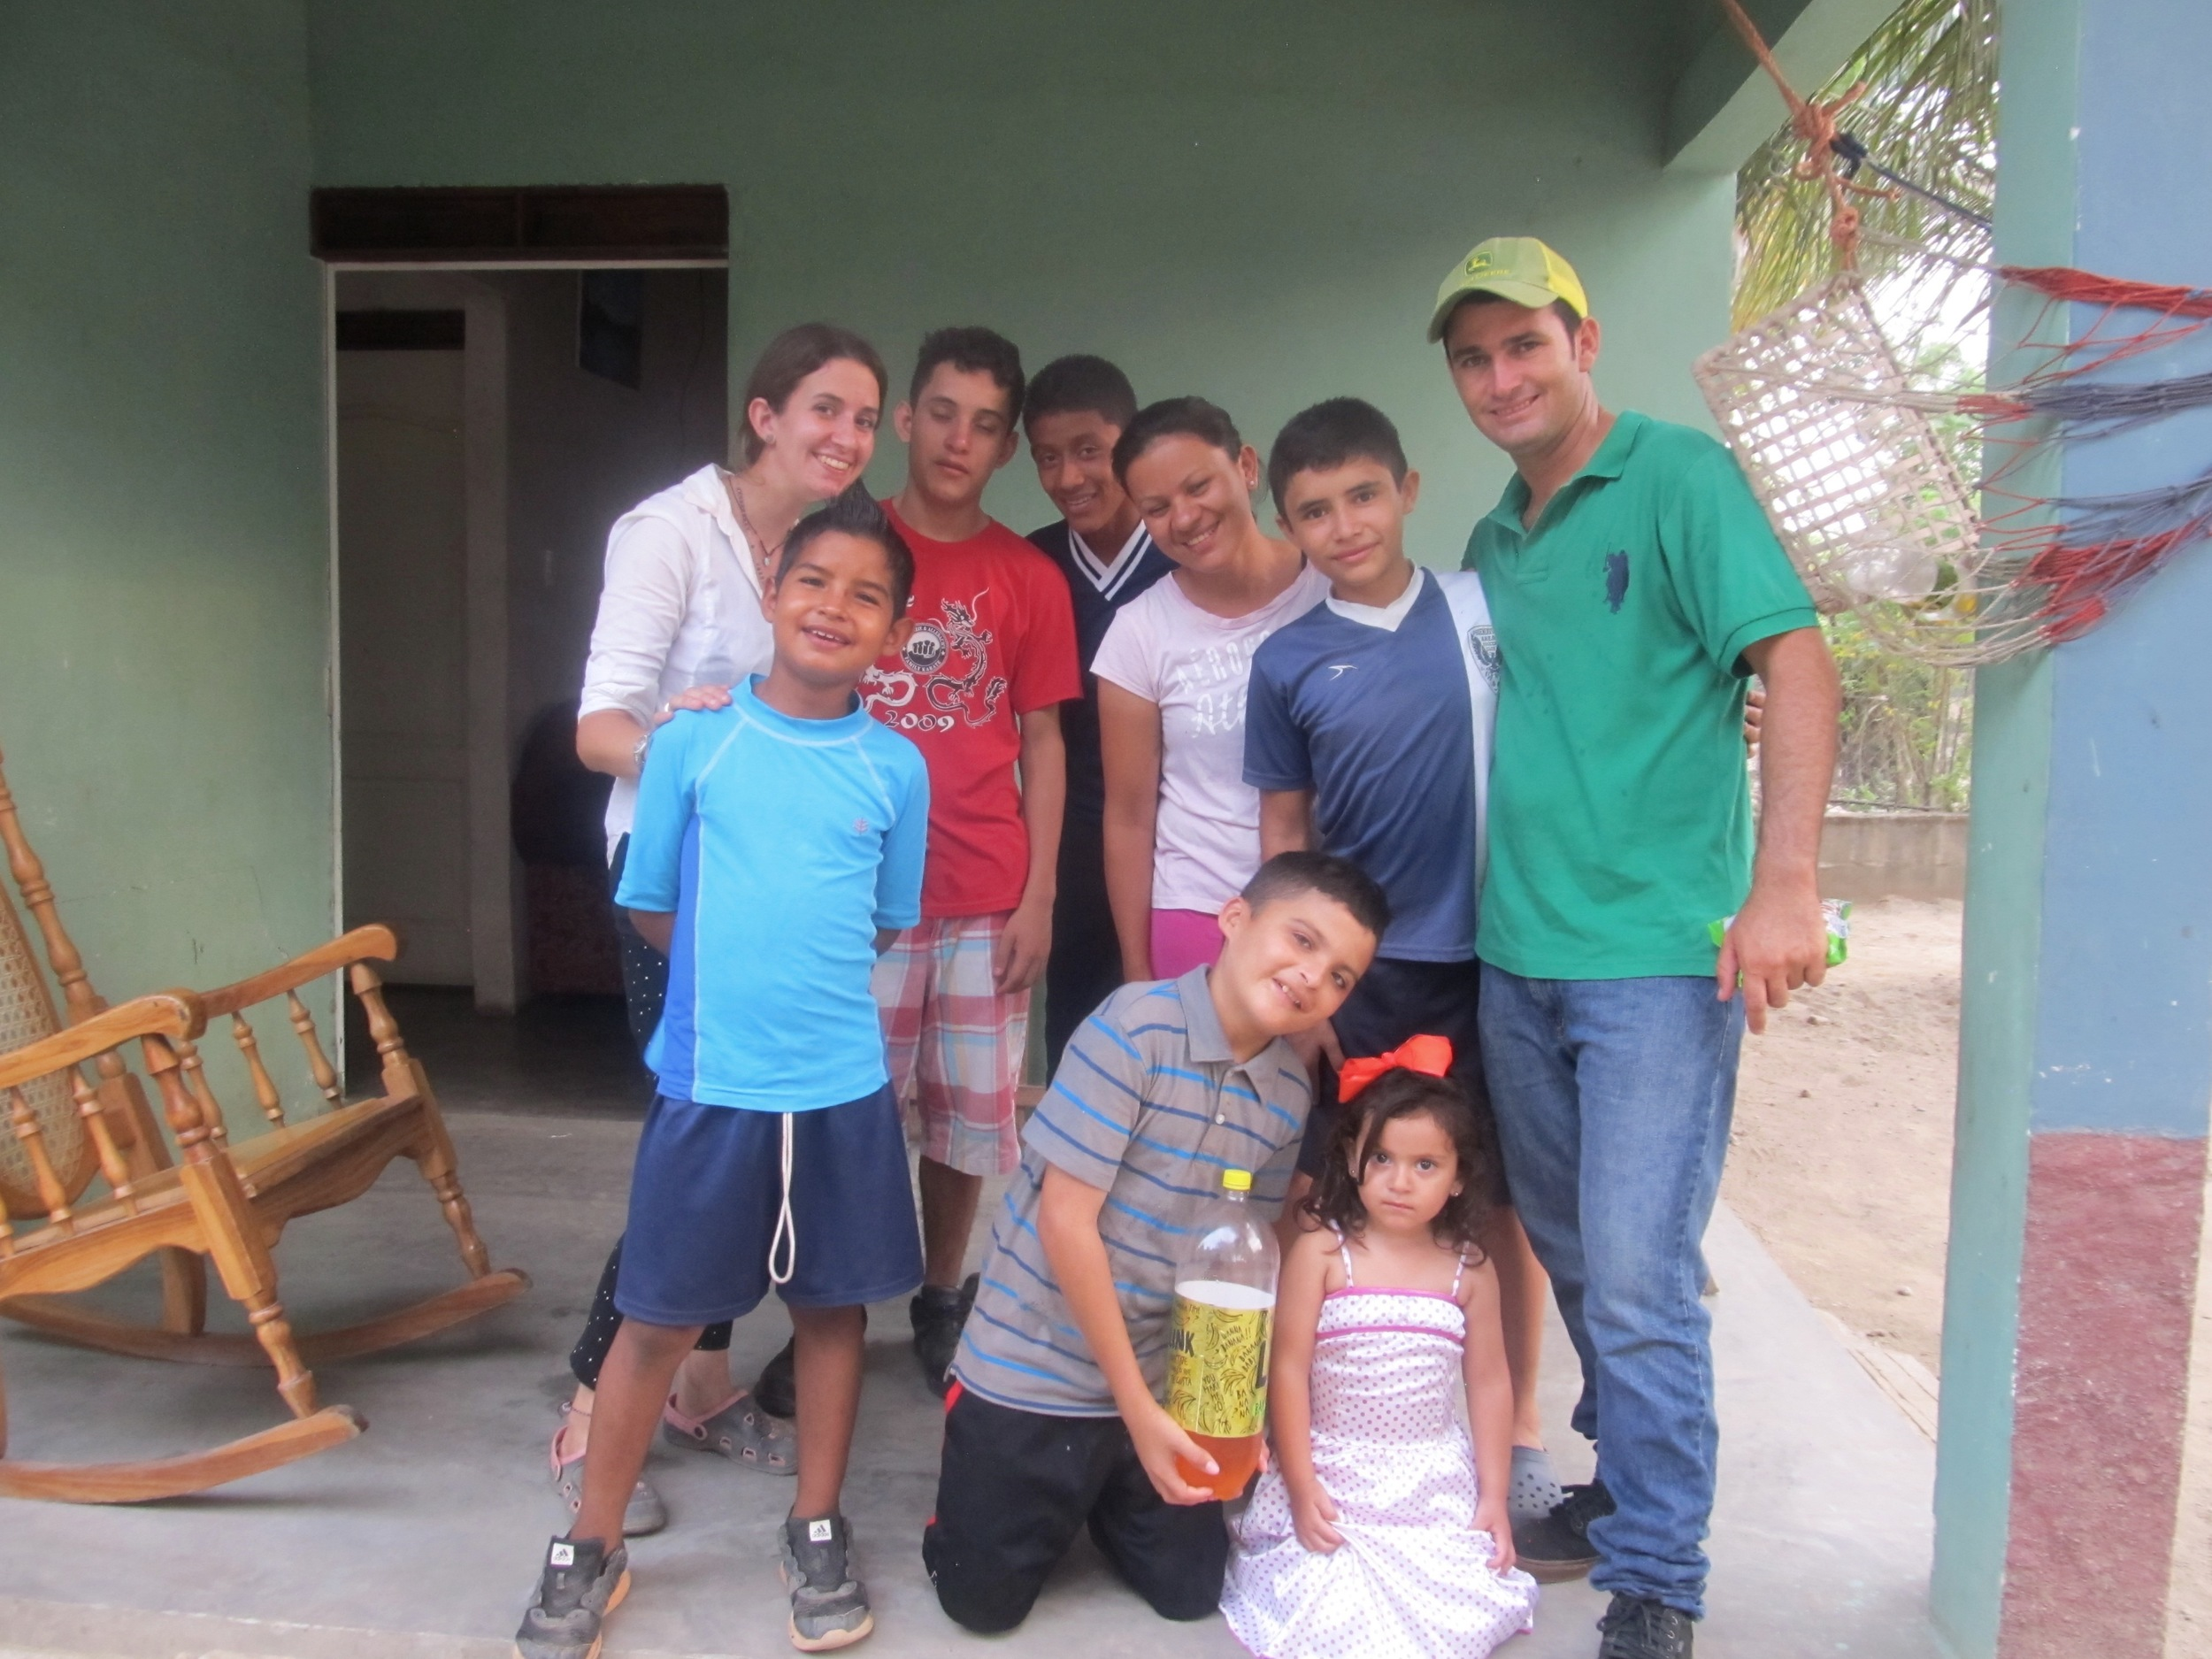 Pancho and friends (including Sergio, in the green) celebrating his birthday in May